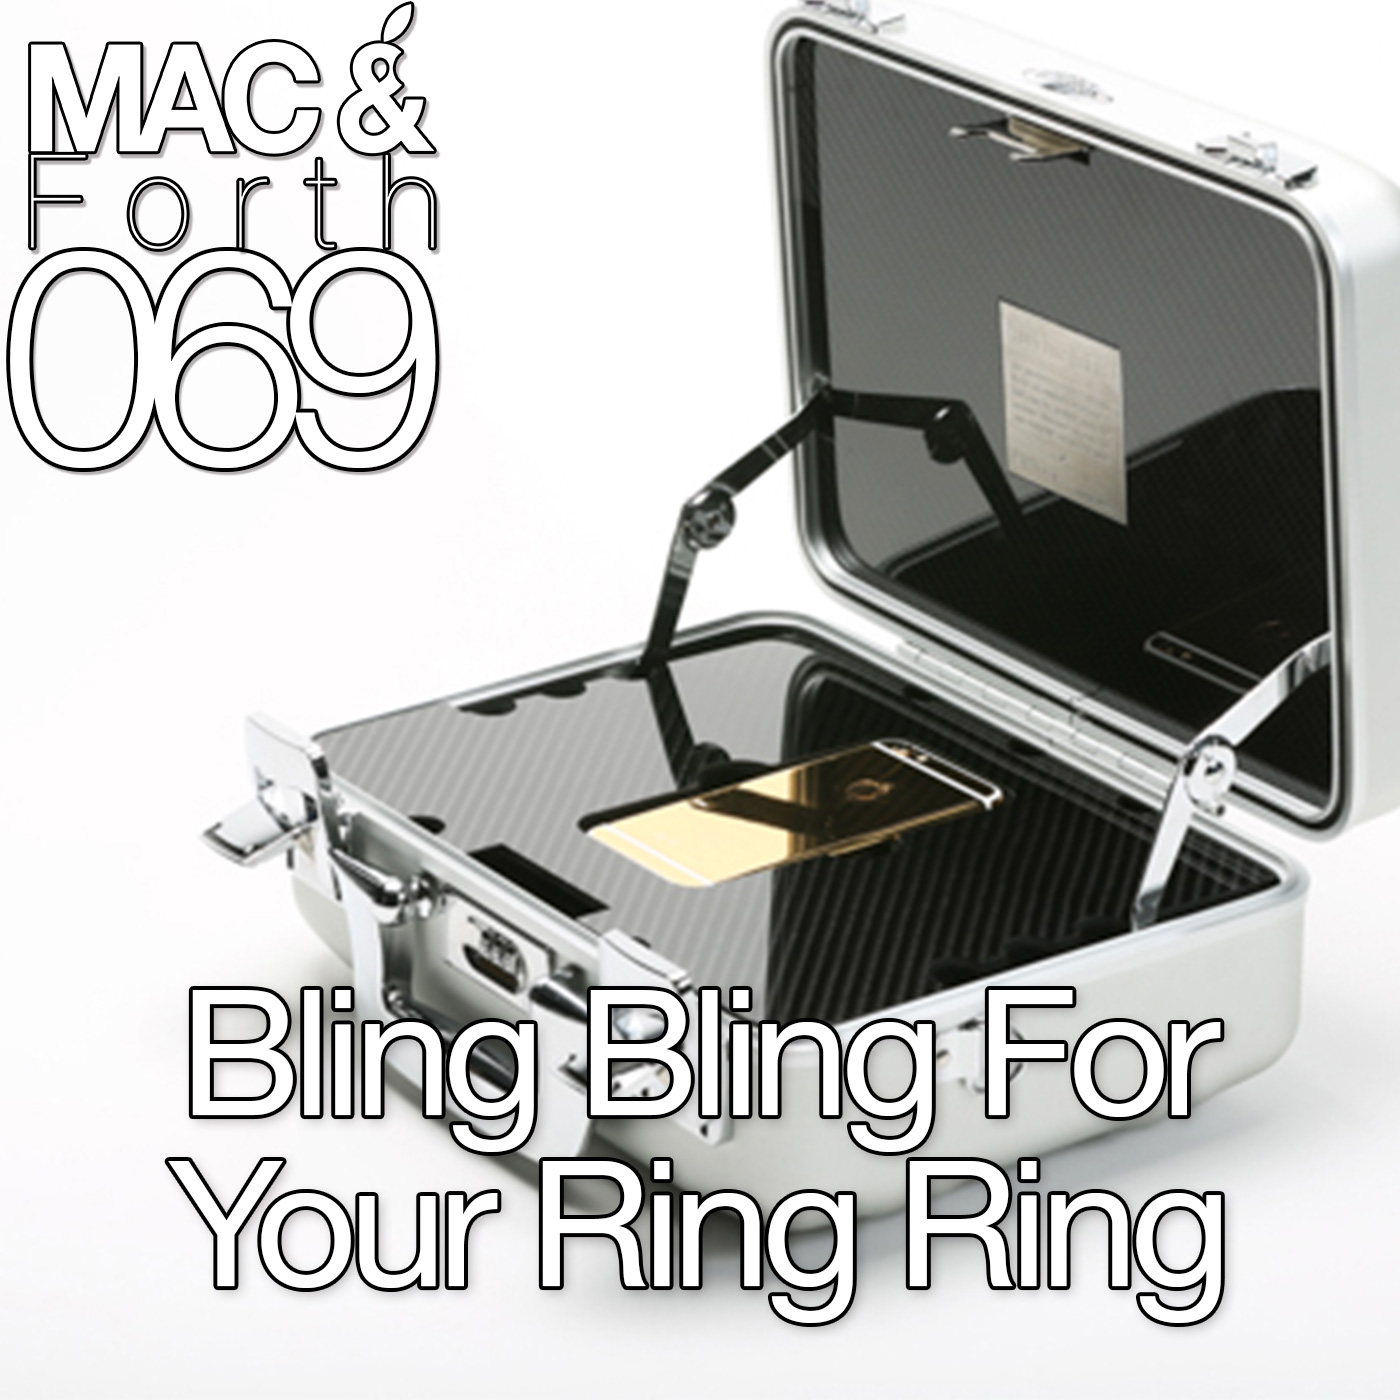 The Mac & Forth Show 069 - Bling Bling For Your Ring Ring